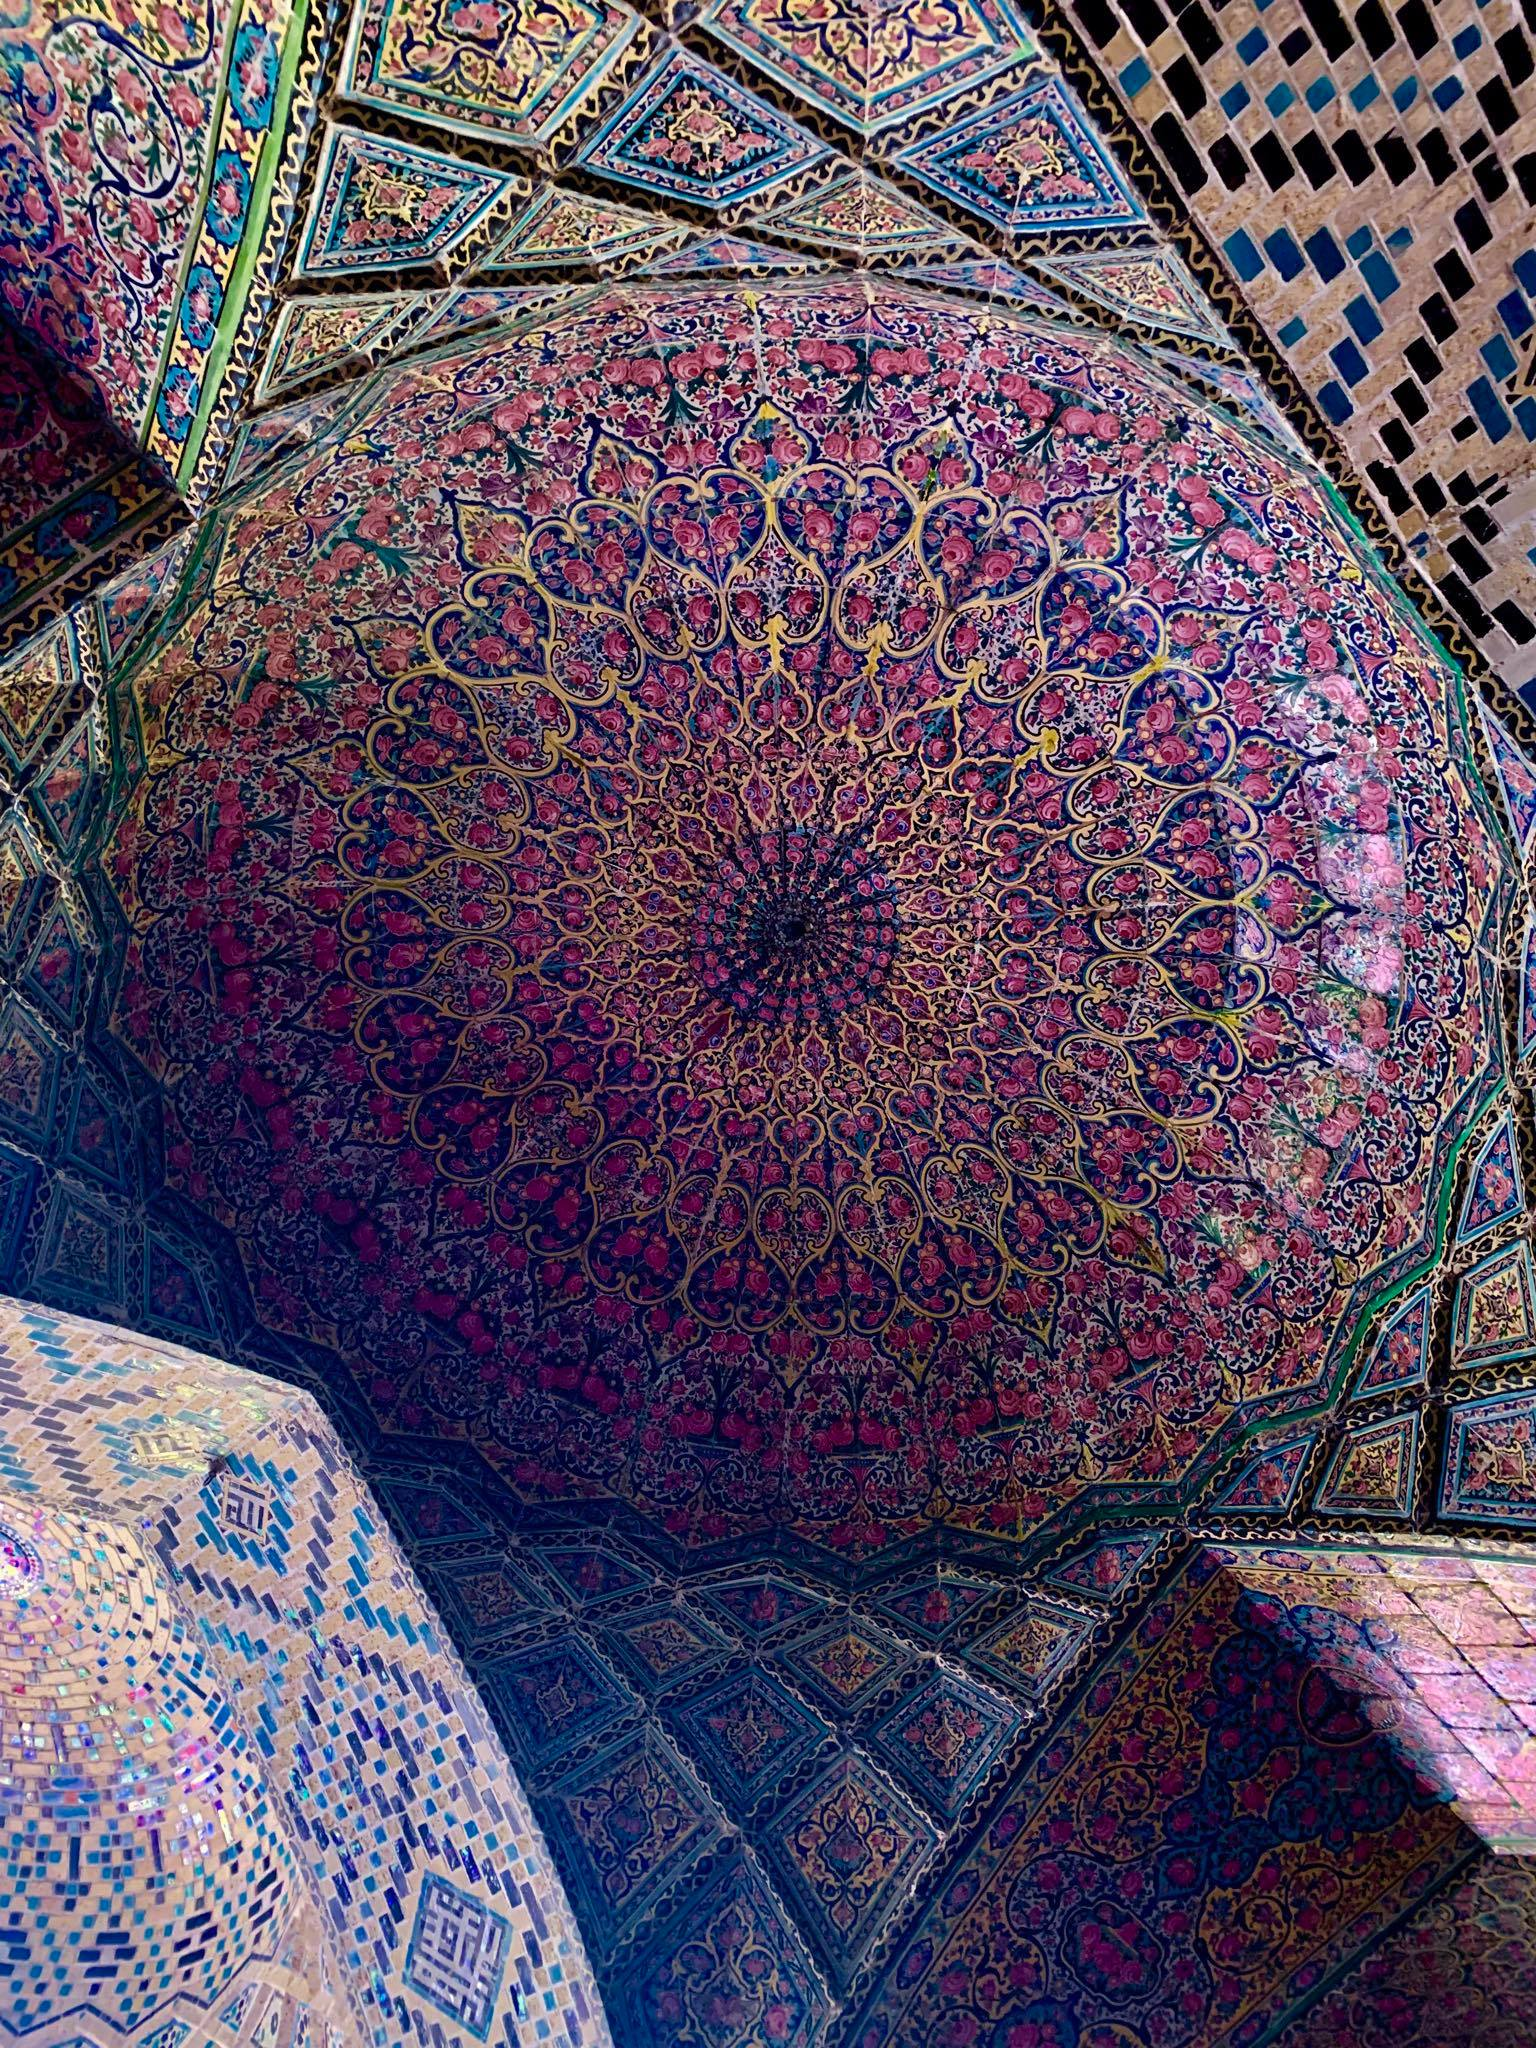 Kach Solo Travels in 2019 Full day tour of Shiraz42.jpg